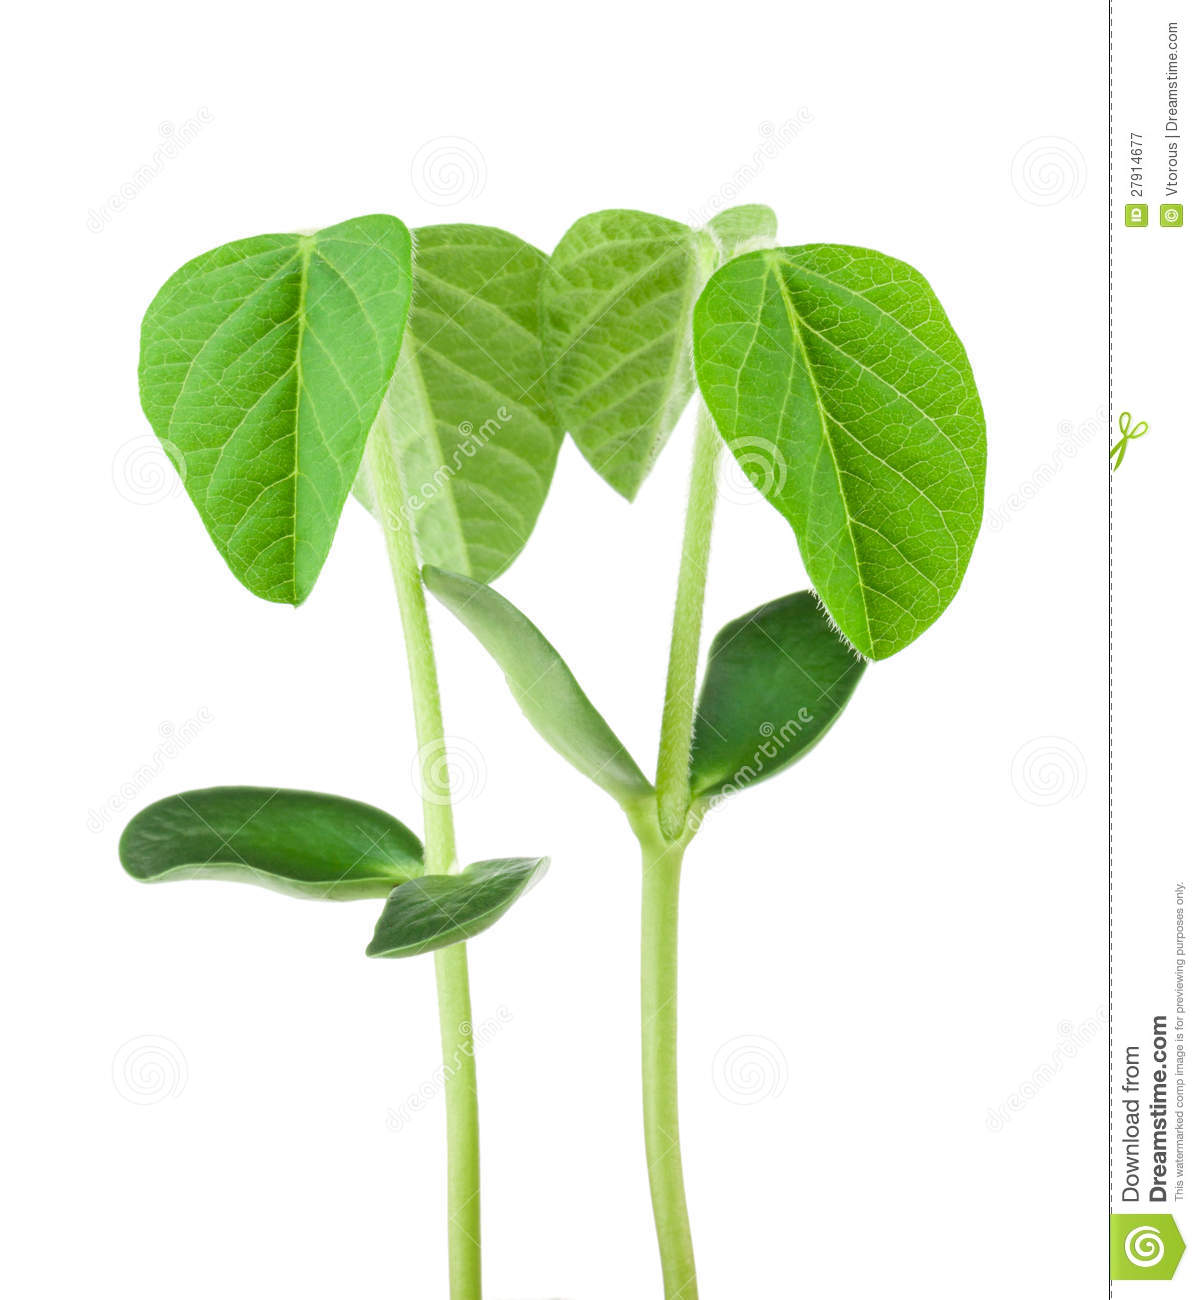 soy plant stock image image of leaf food life isolated 27914677. Black Bedroom Furniture Sets. Home Design Ideas